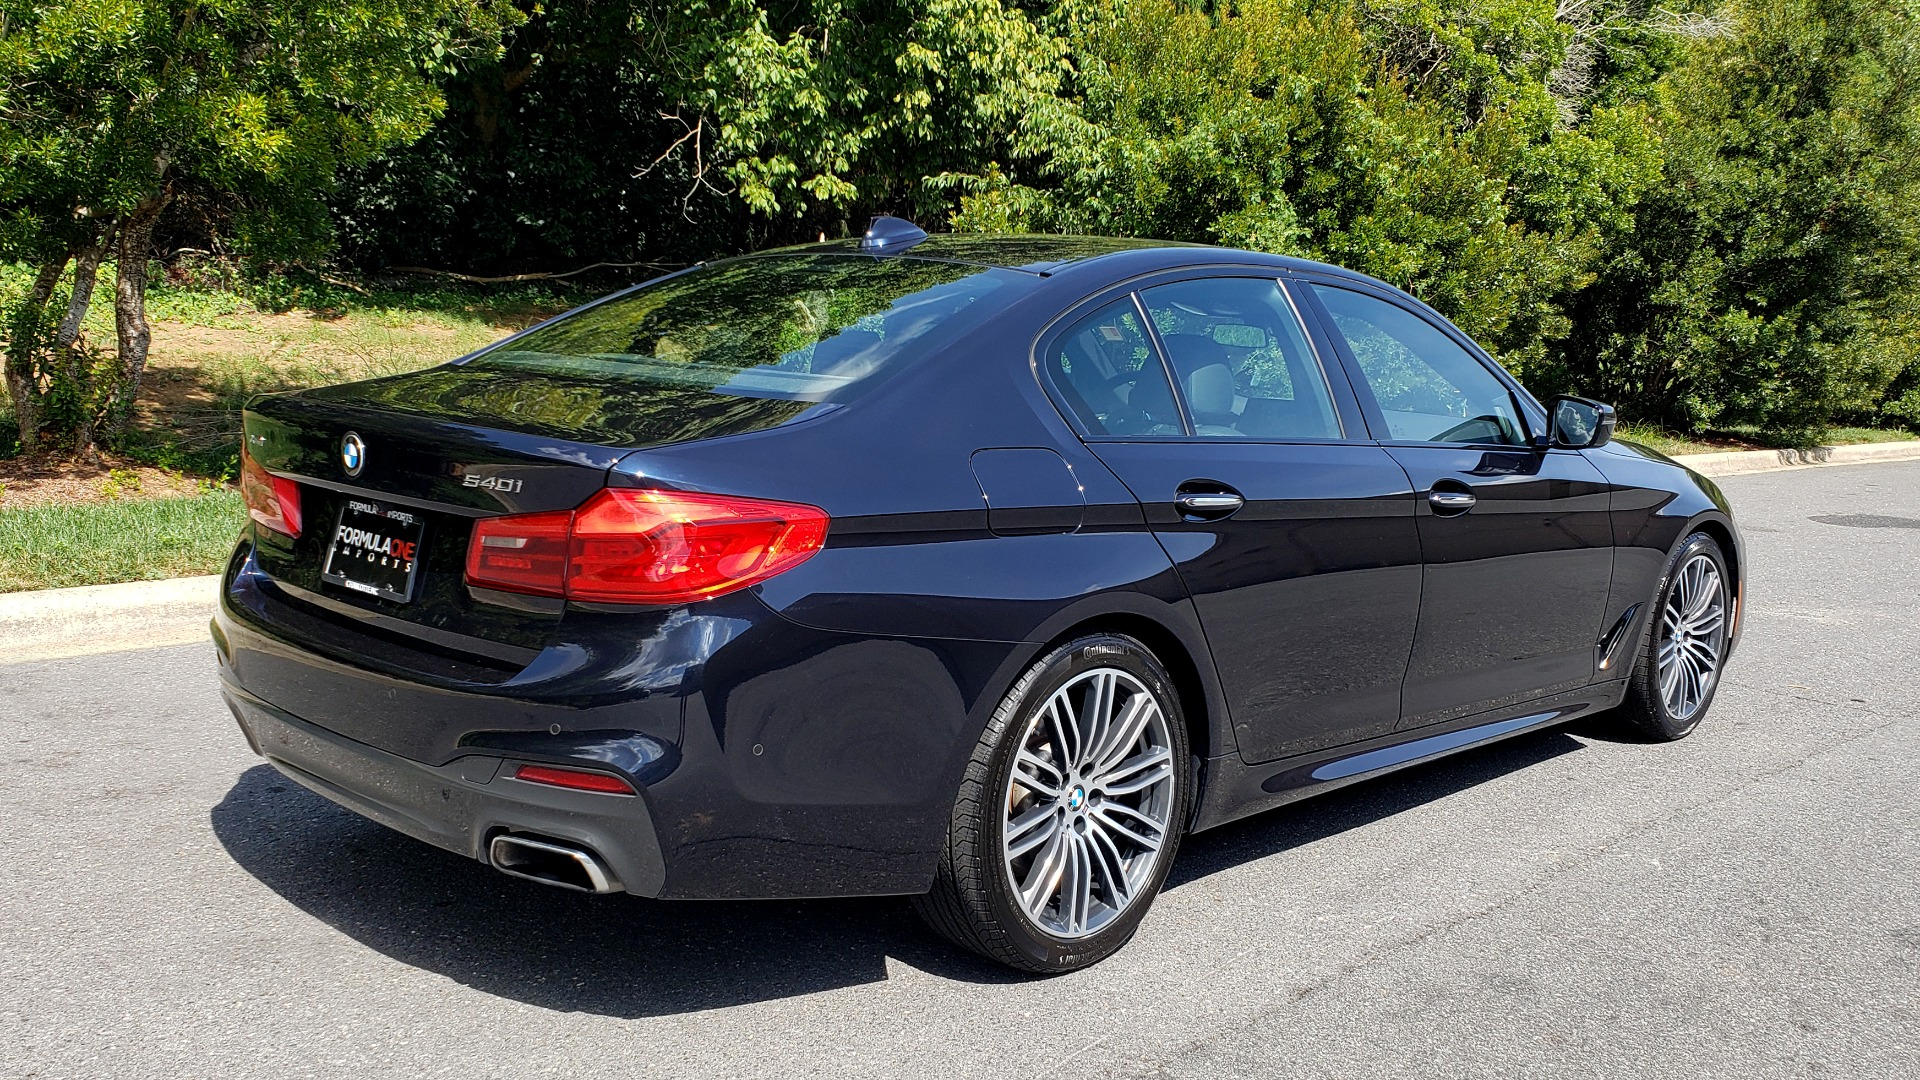 Used 2017 BMW 5 SERIES 540I XDRIVE M-SPORT / PREMIUM / NAV / HUD / SUNROOF / REARVIEW for sale $34,995 at Formula Imports in Charlotte NC 28227 6